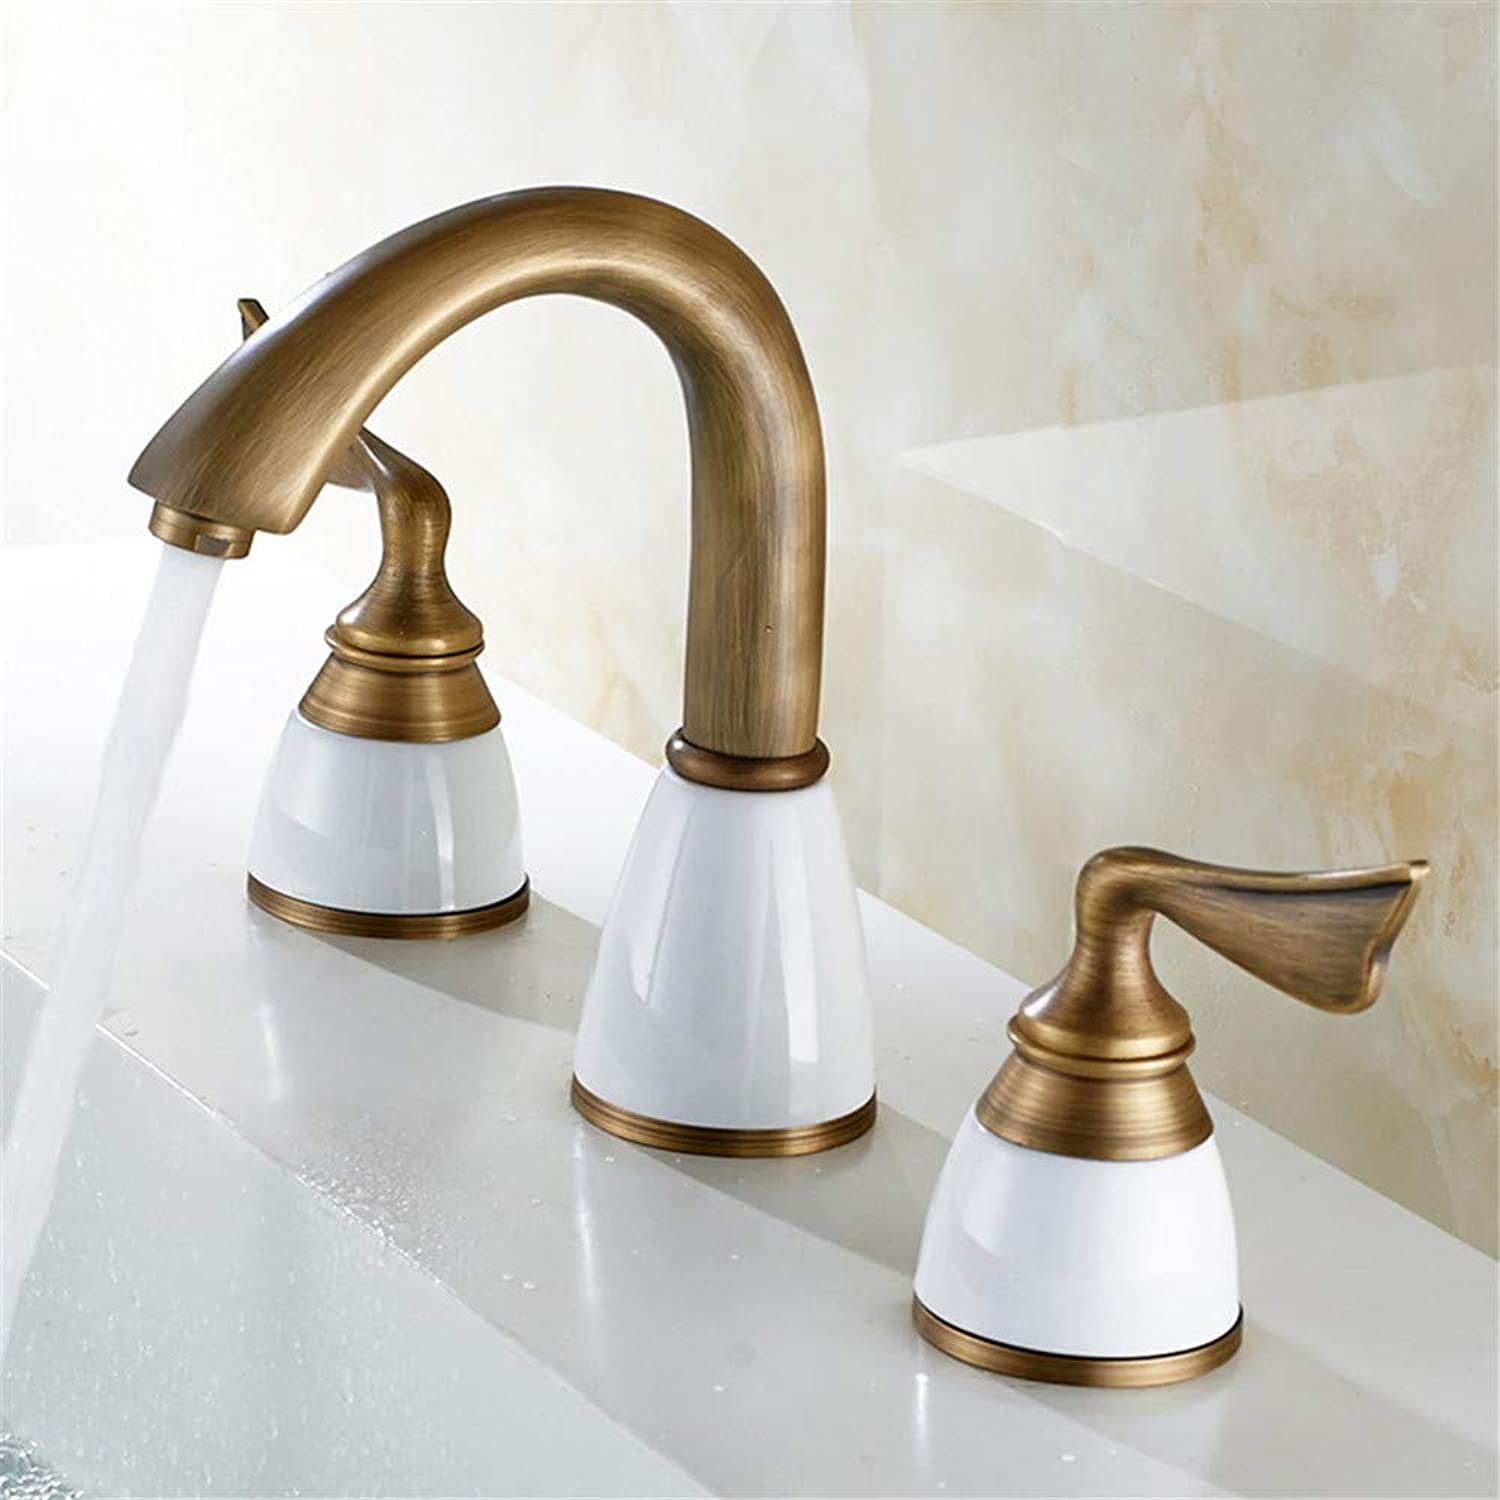 YAWEDA Antique All-Copper Basin Faucet Three-Piece Set Three-Hole Split Cold and Hot Water Mixer